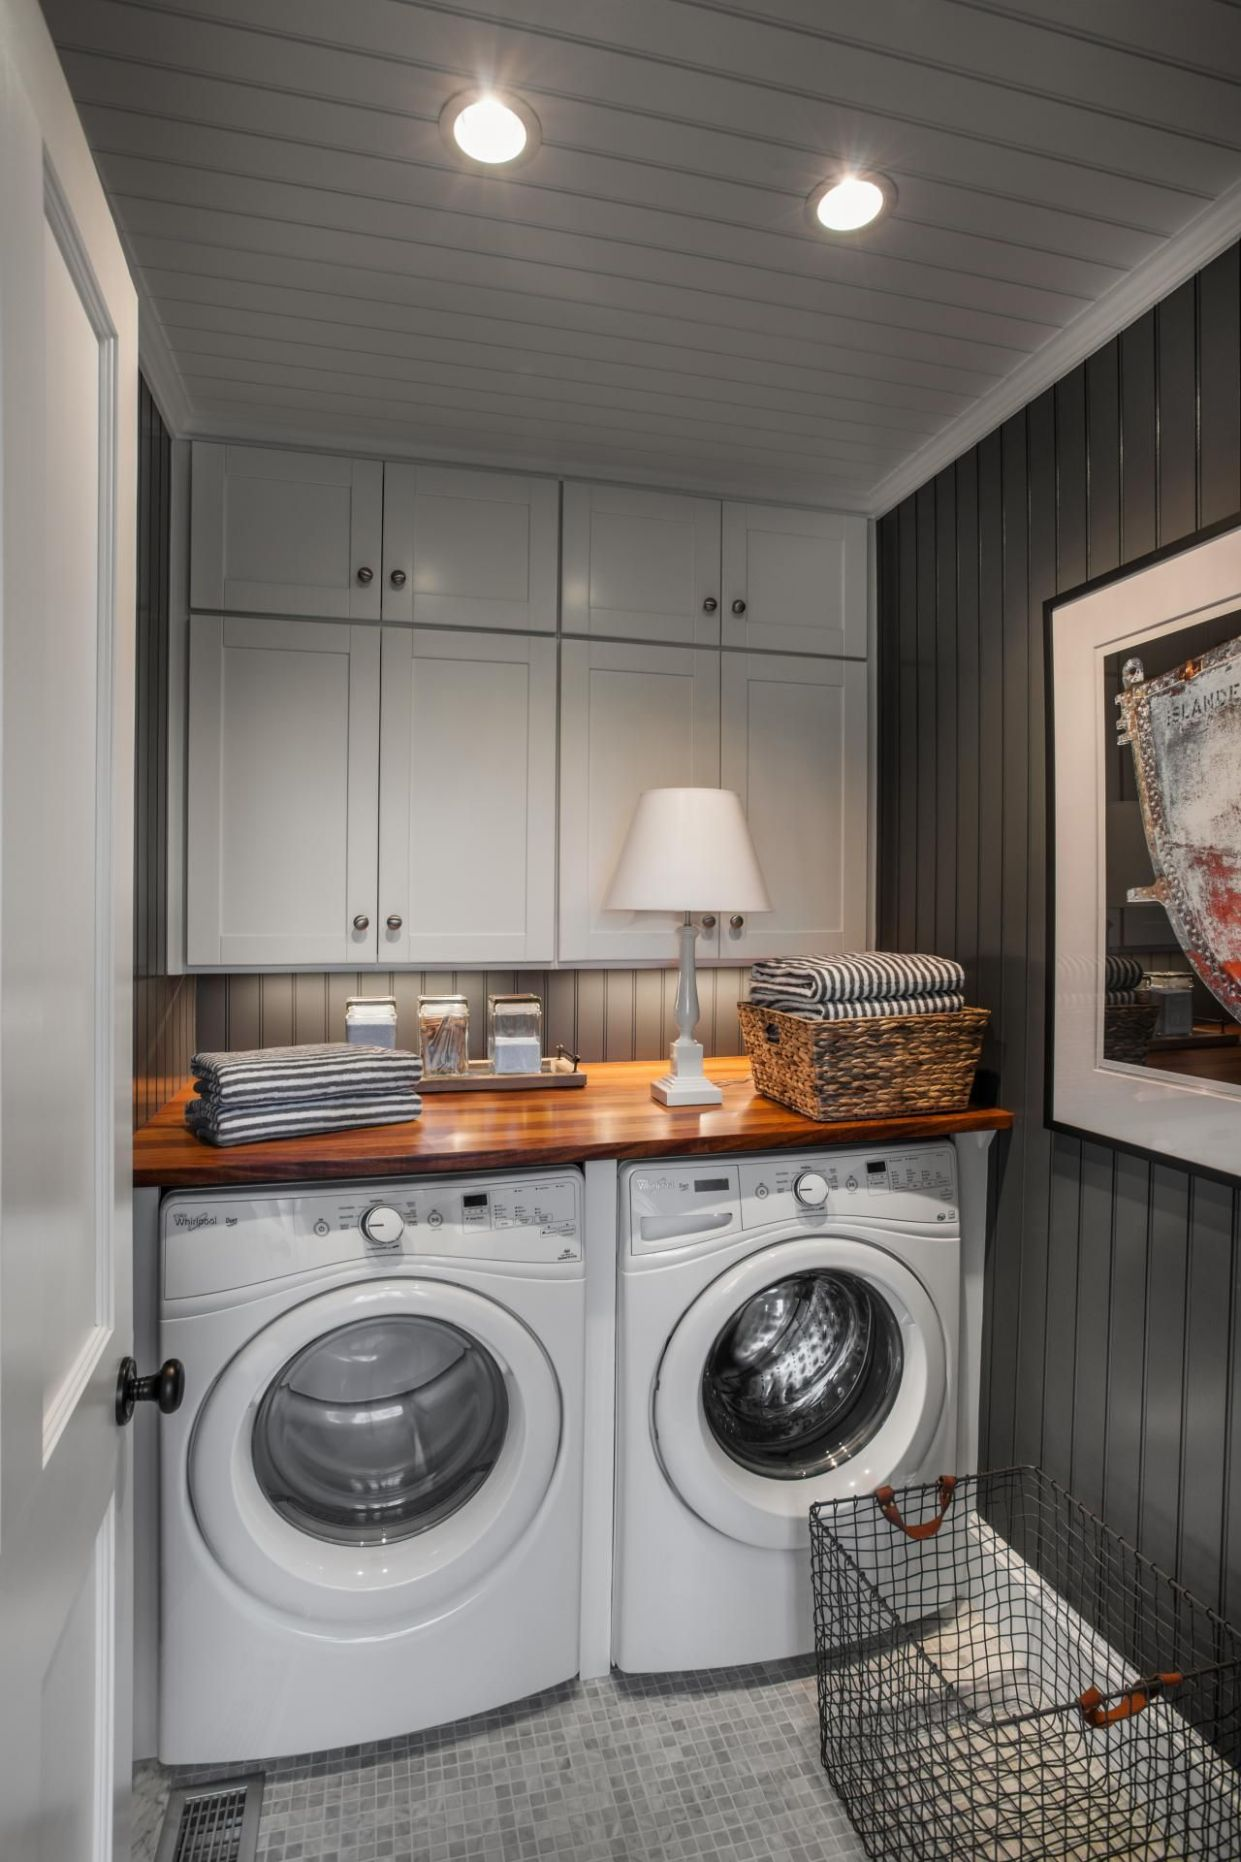 Laundry Room From HGTV Dream Home 11 | Laundry room remodel ..